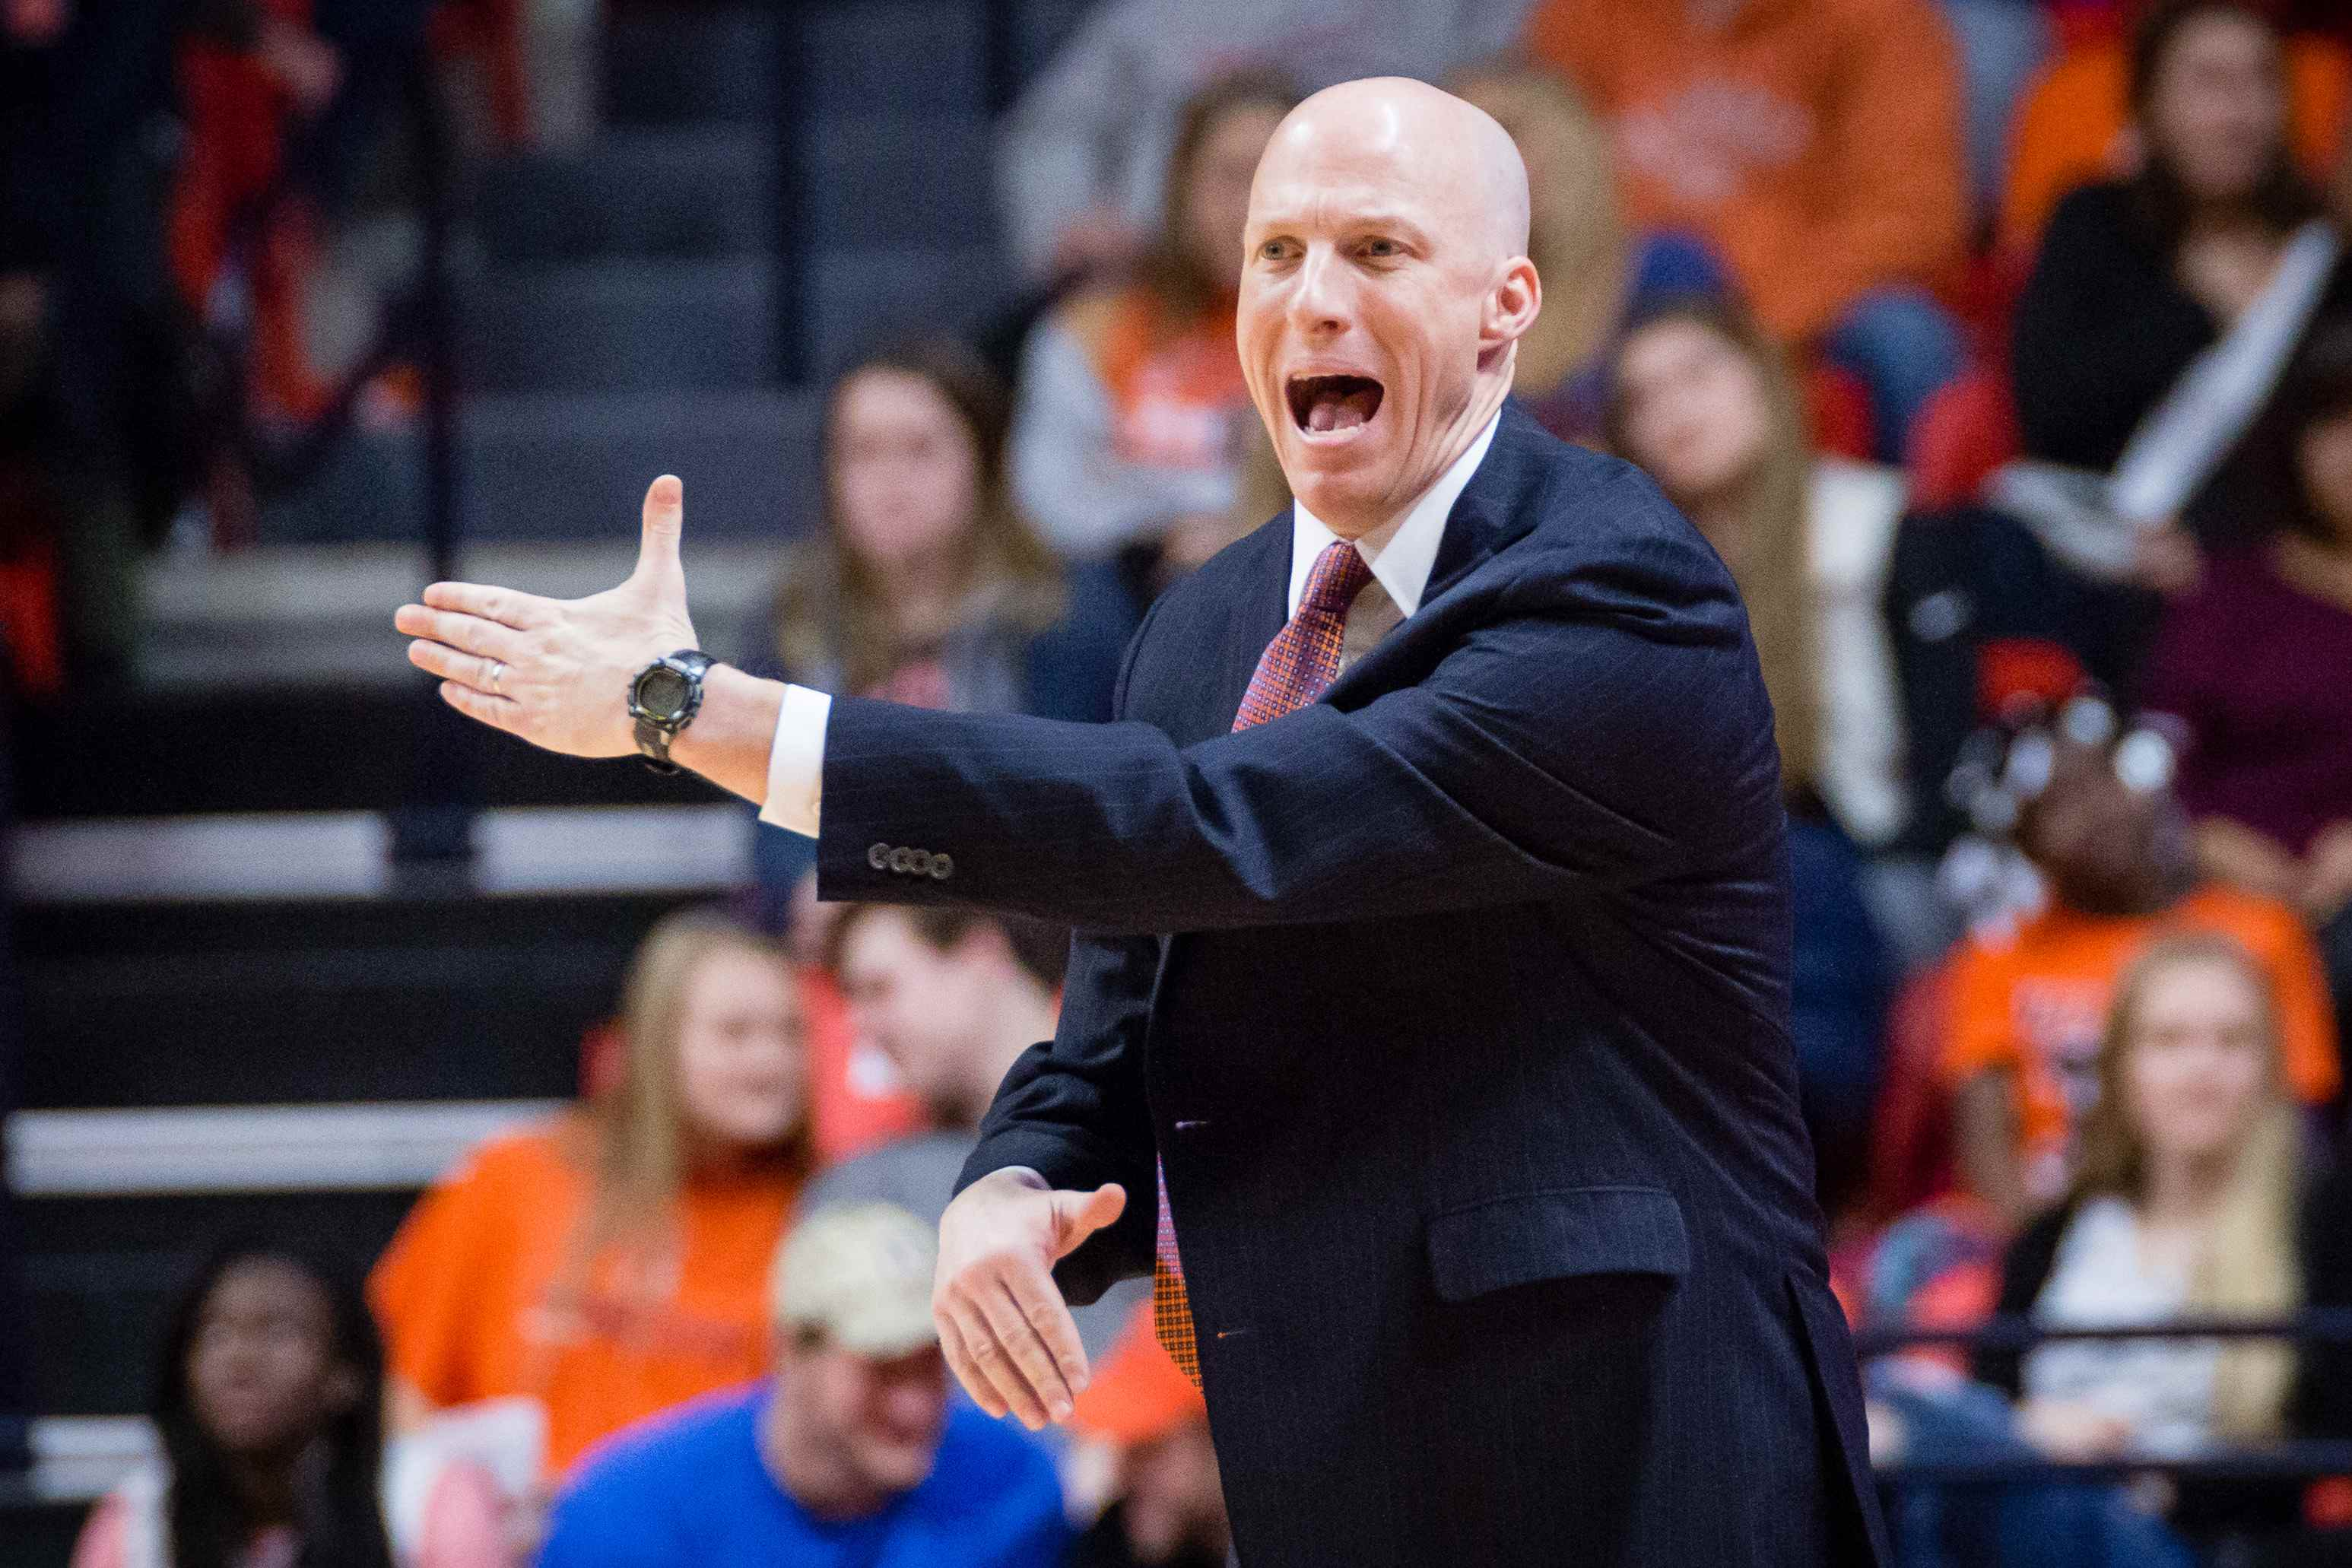 Illinois head coach John Groce shouts instructions to his team from the sideline during the game against Iowa at State Farm Center on Wednesday, January 25. Groce was relieved of his duties by Athletic Director Josh Whitman on Saturday.